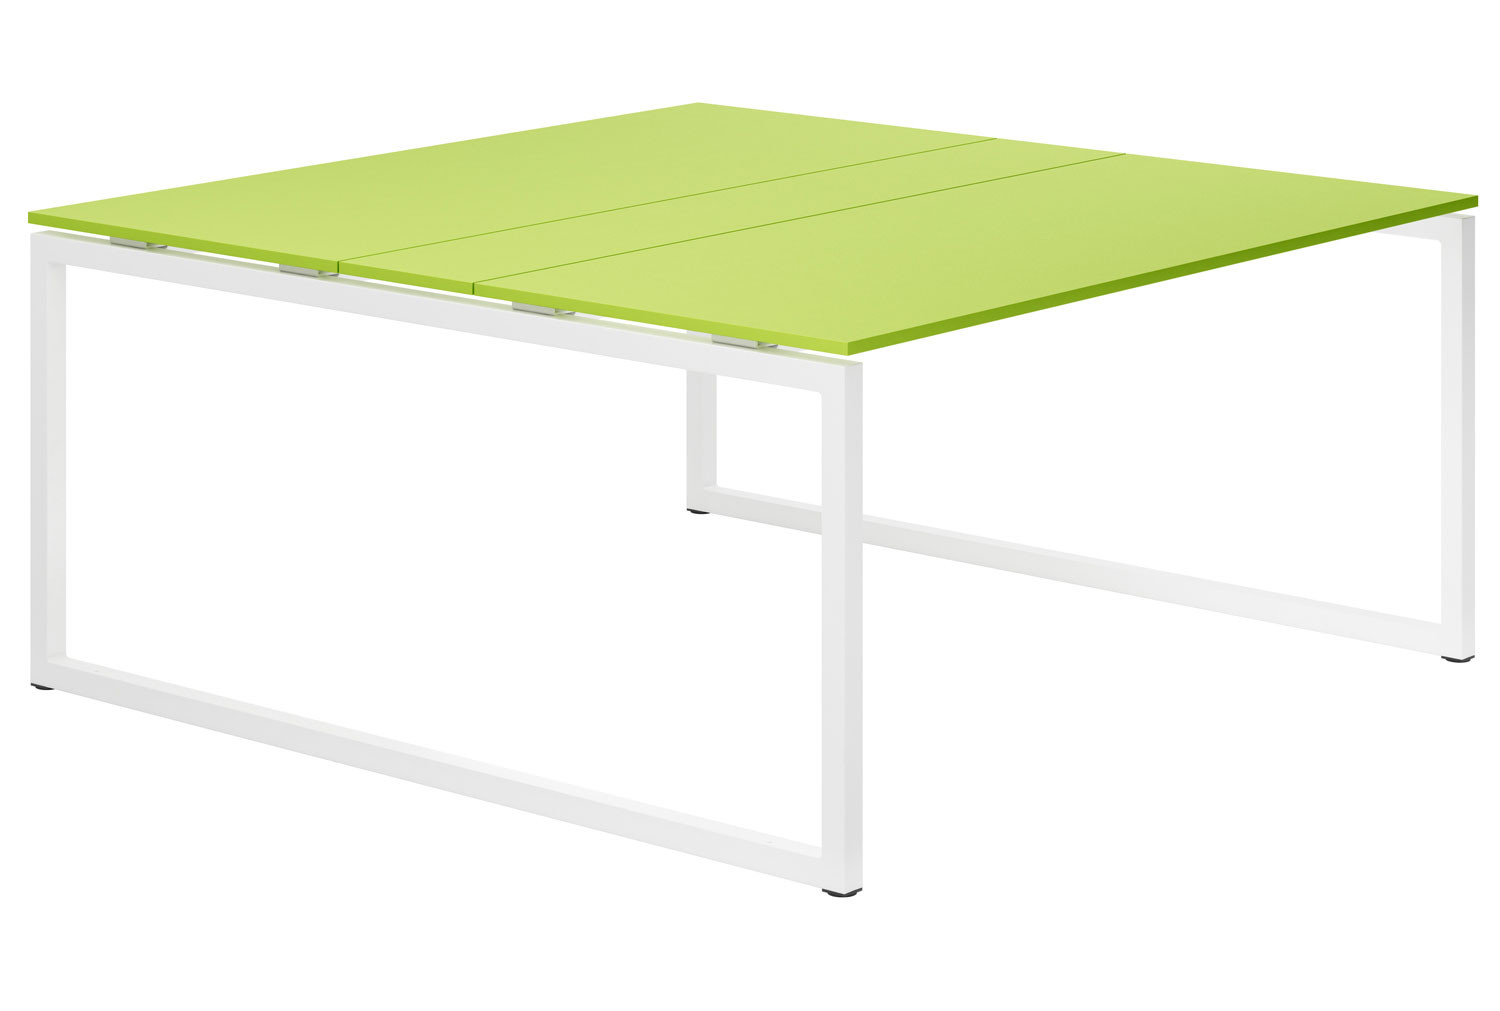 Campos Hooped Leg 6-8 Person Meeting Table (Green)